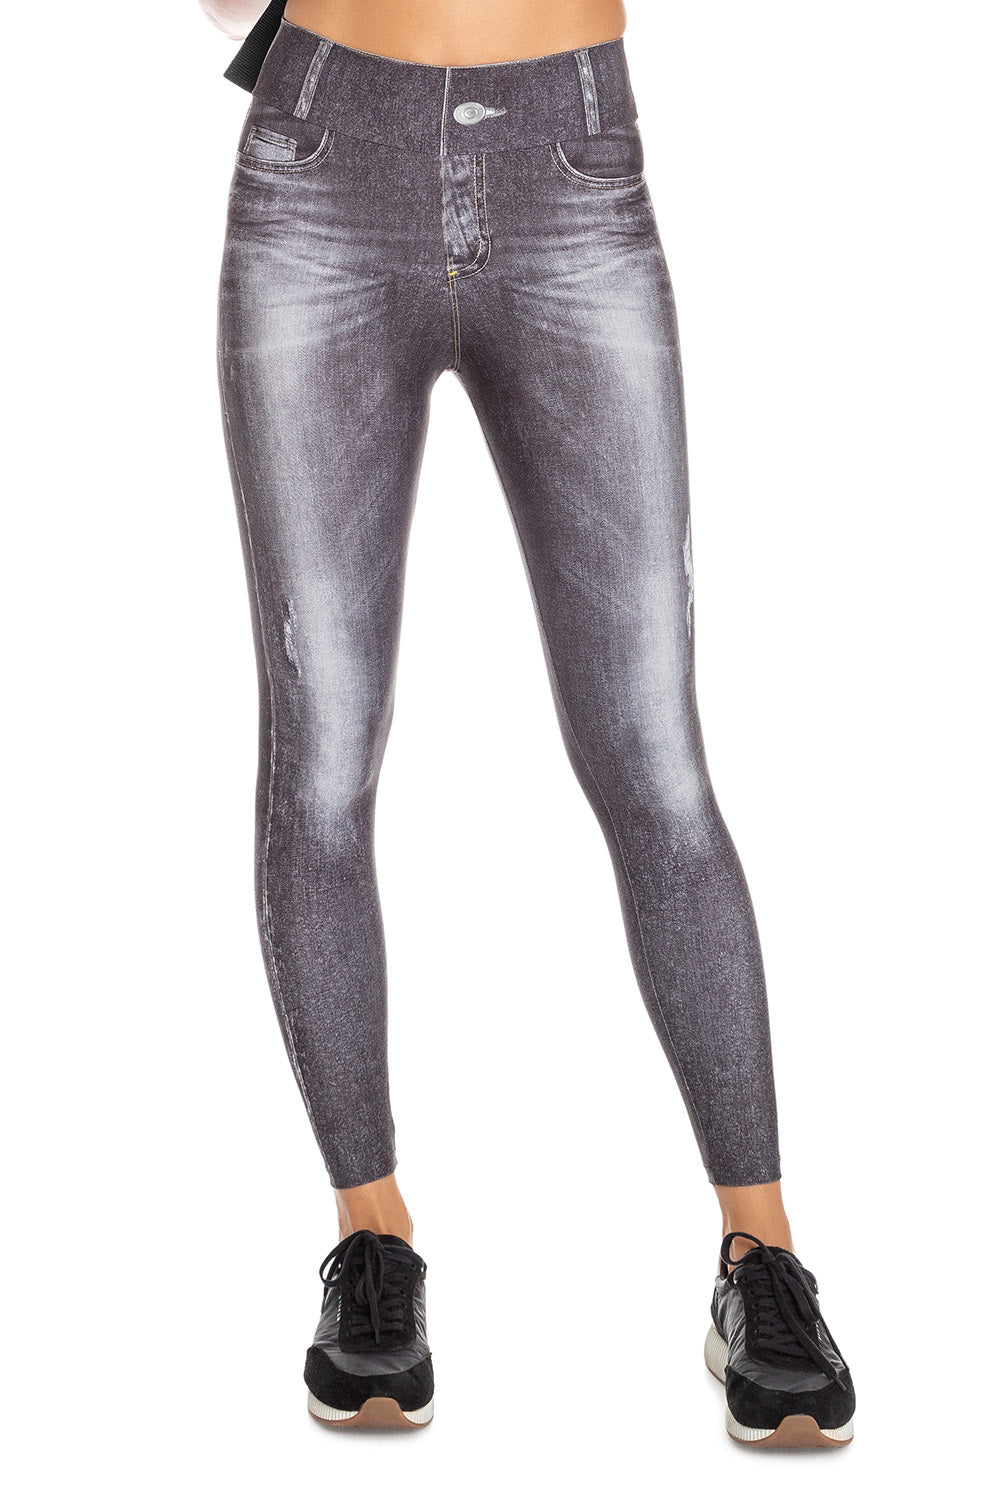 Daily Look Jeans Legging